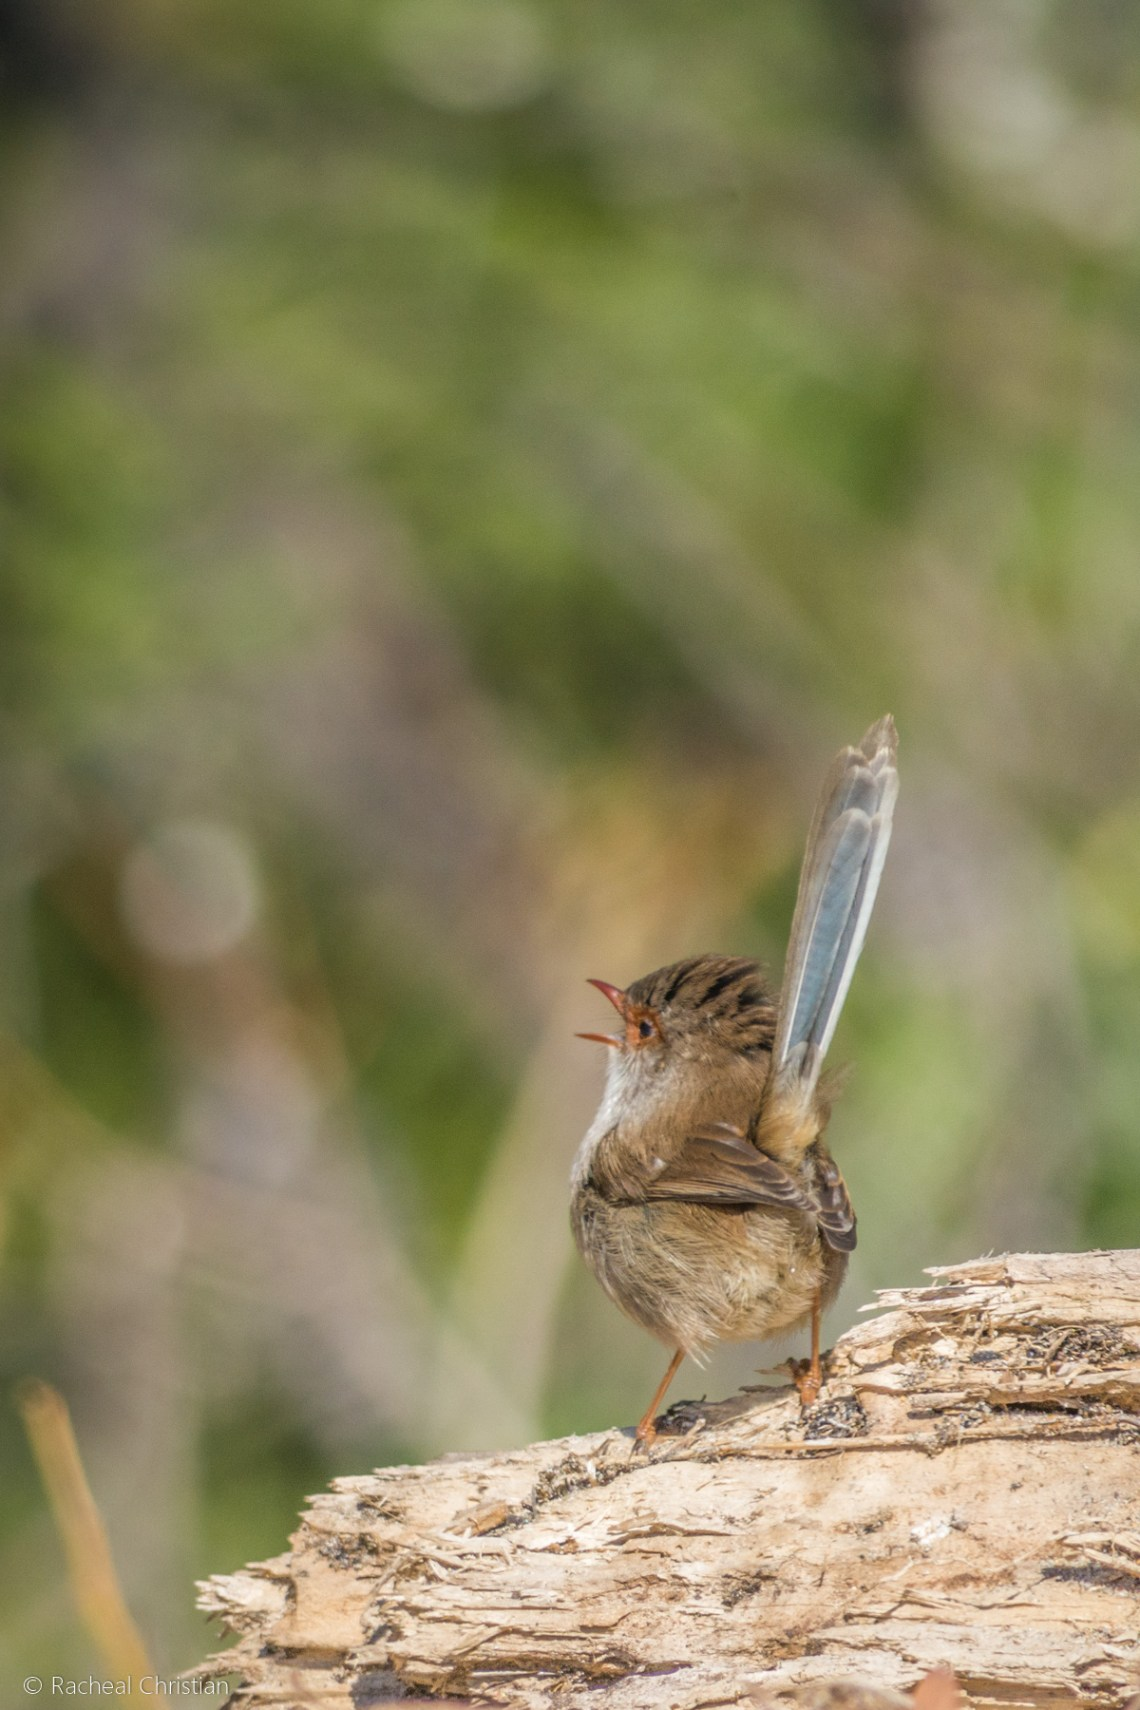 Bird Photos: Female Superb Fairy Wren, Malurus cyaneus Photographed by Racheal Christain rachealchristianphotography.com